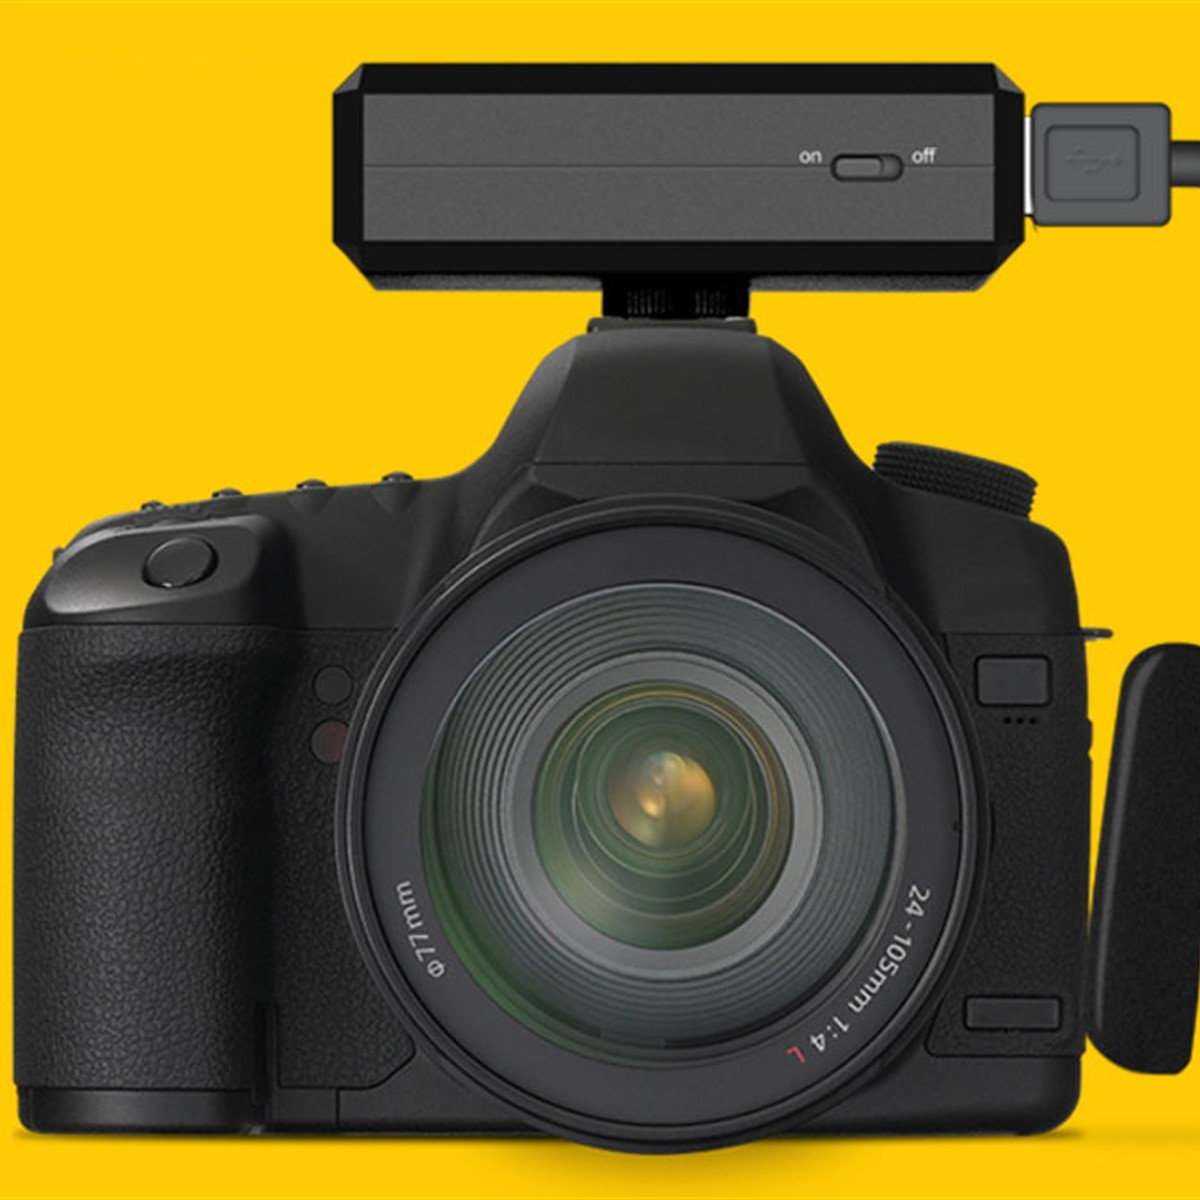 CamFi DSLR controller now offers real-time upload to Dropbox